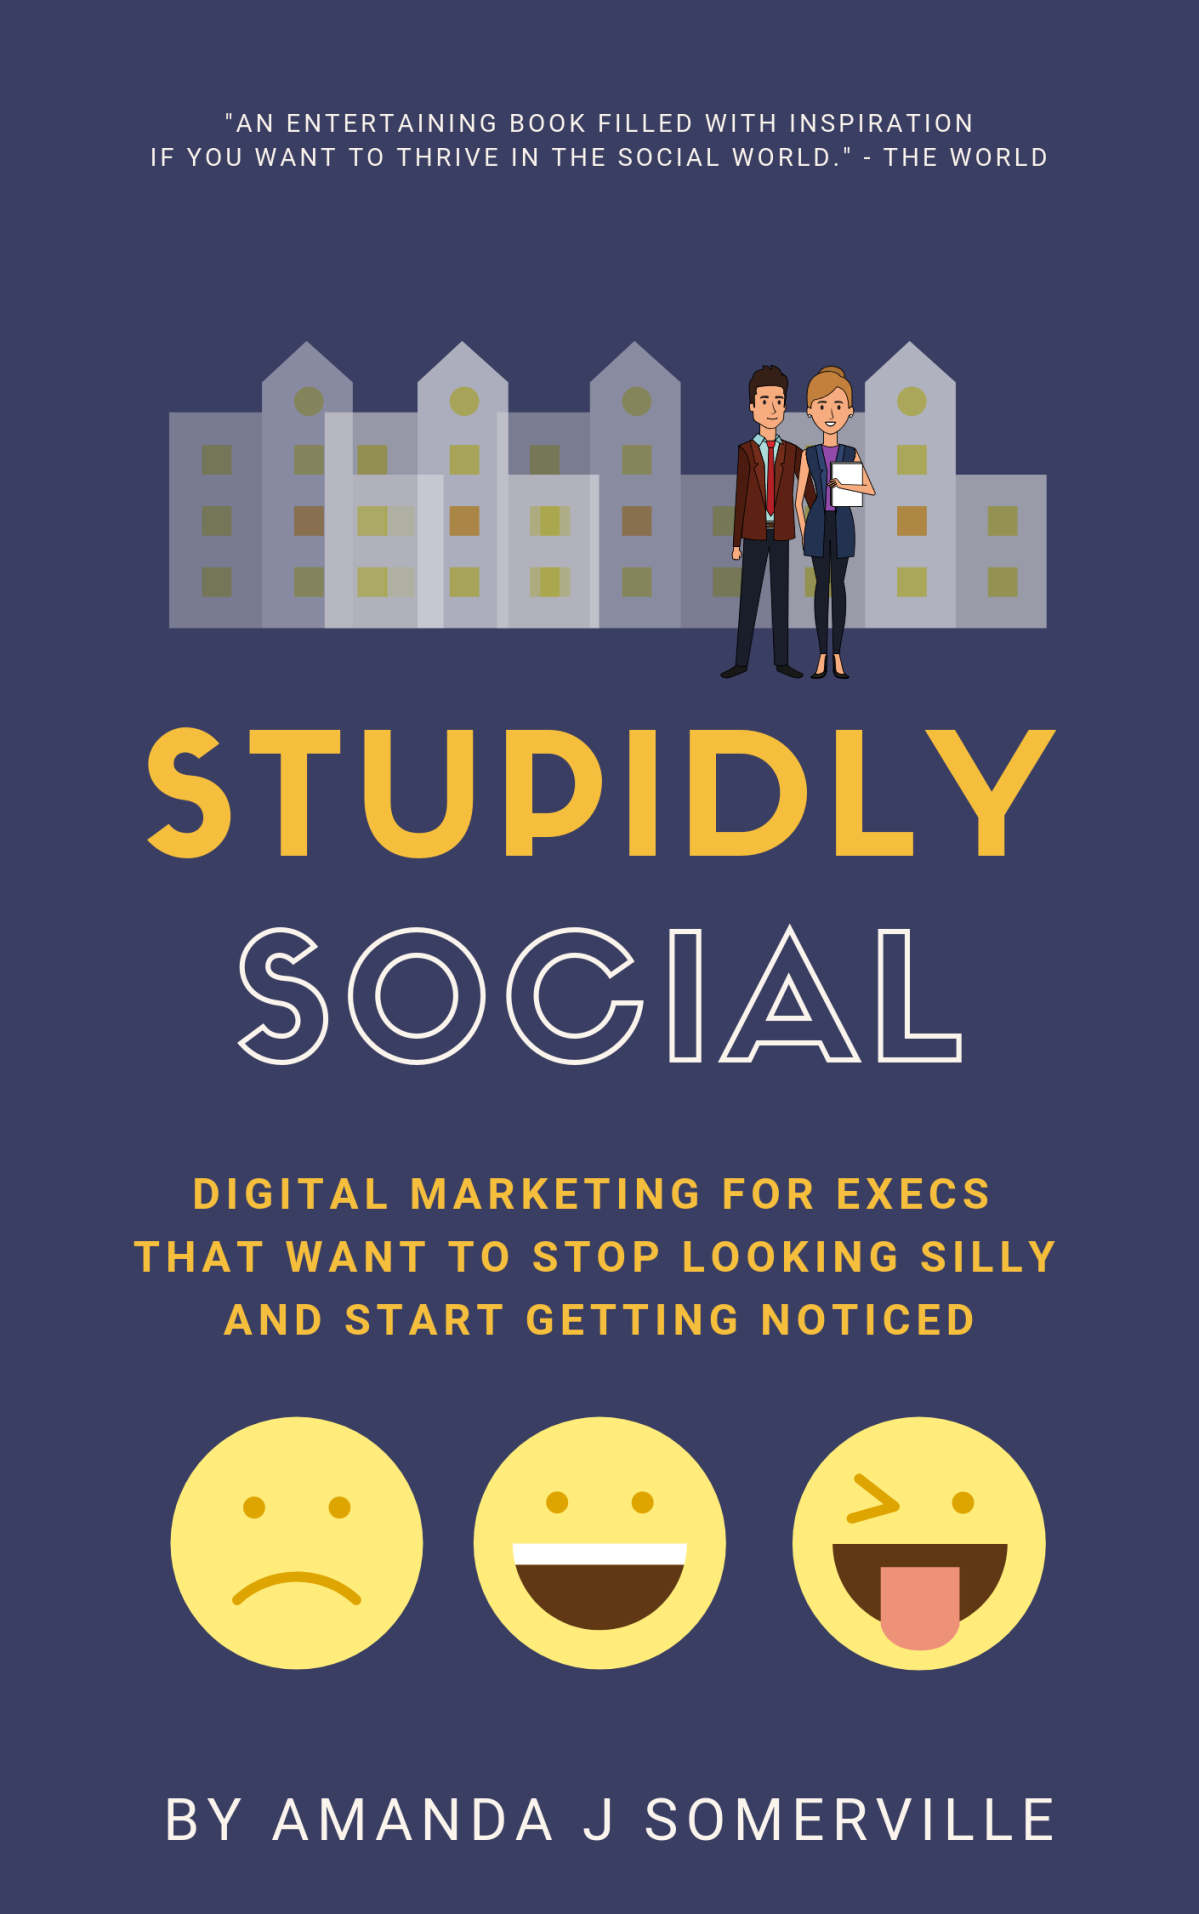 Are You StupidlySocial?